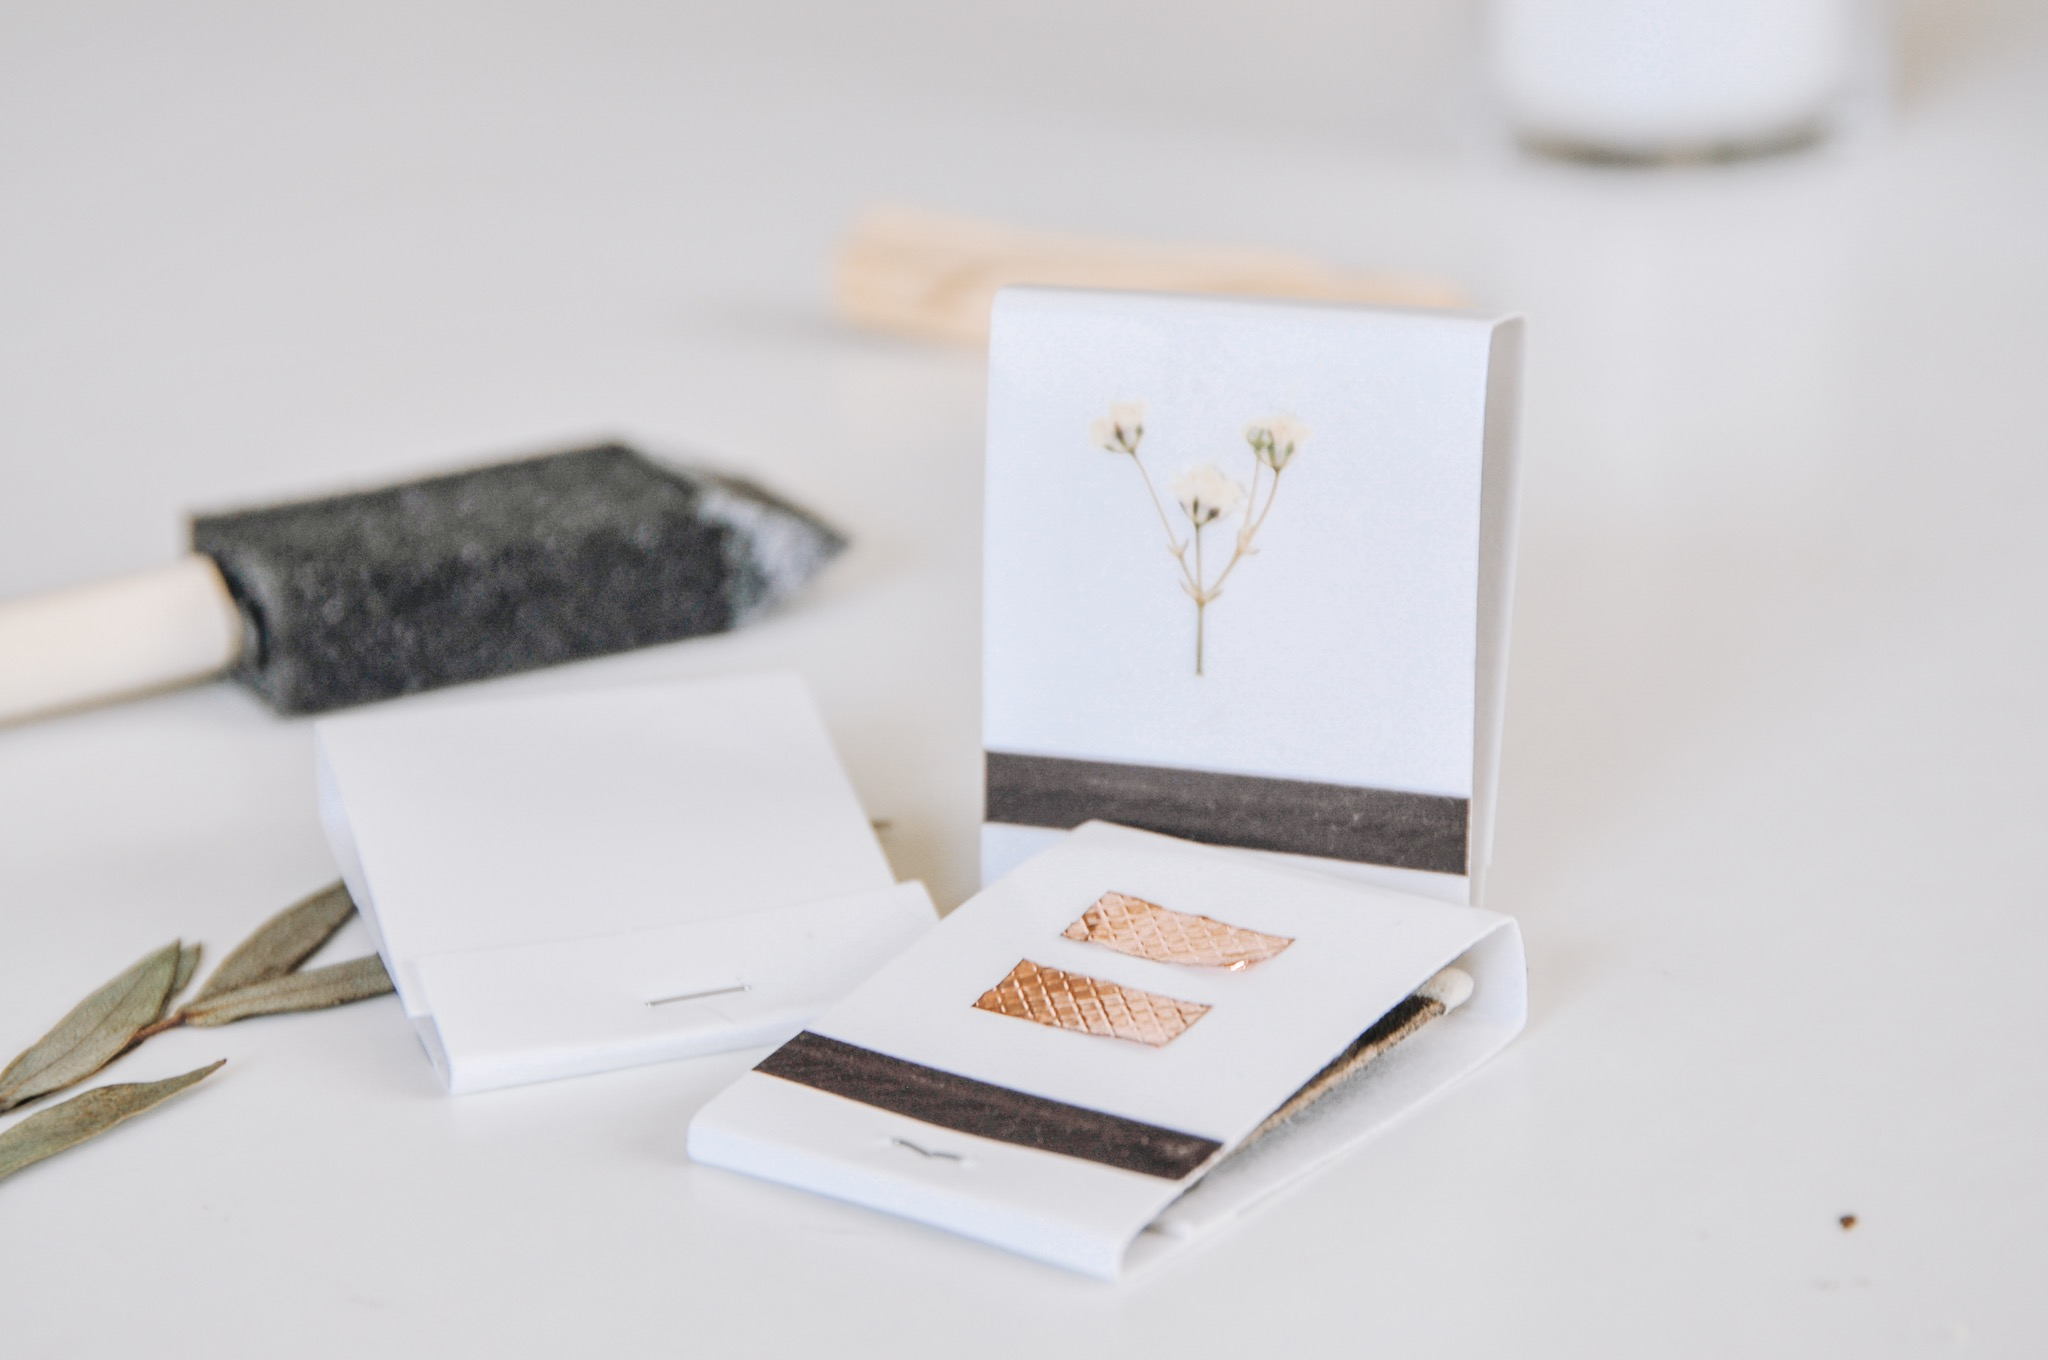 finished diy matchbooks with pressed flowers